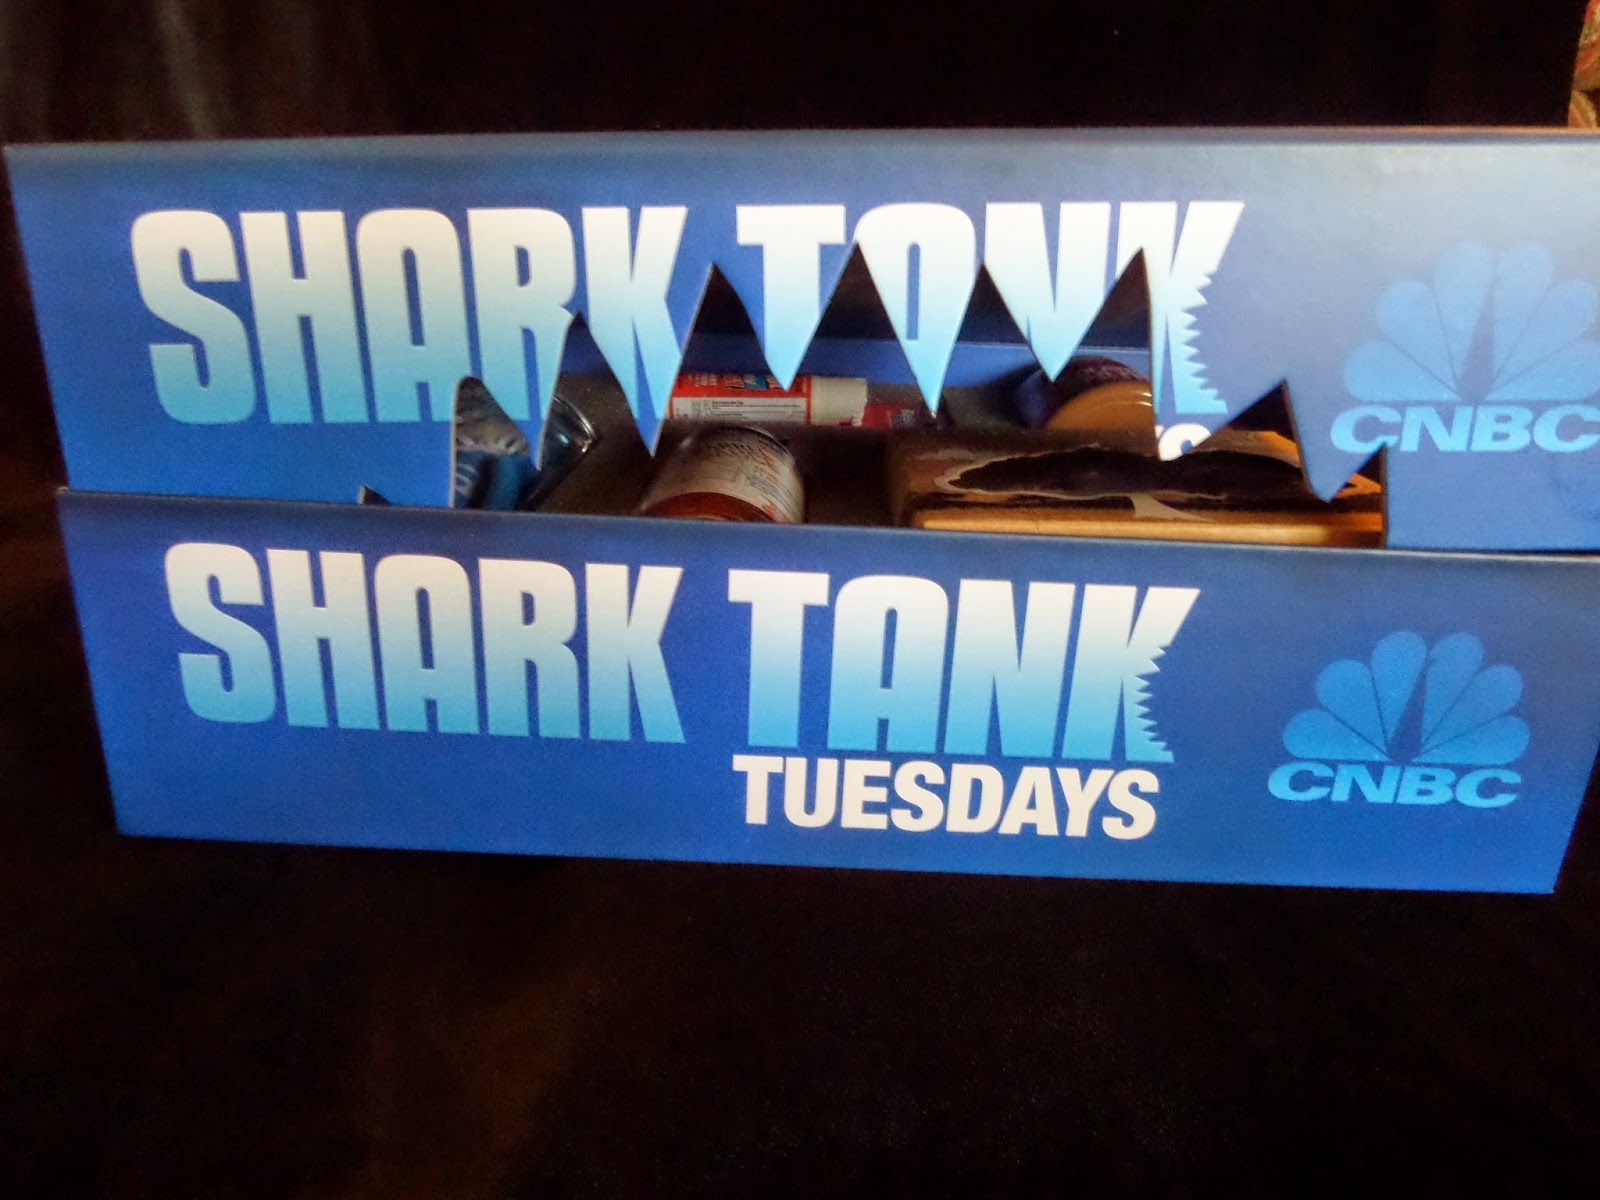 Shark Tank Tuesdays on CNBC